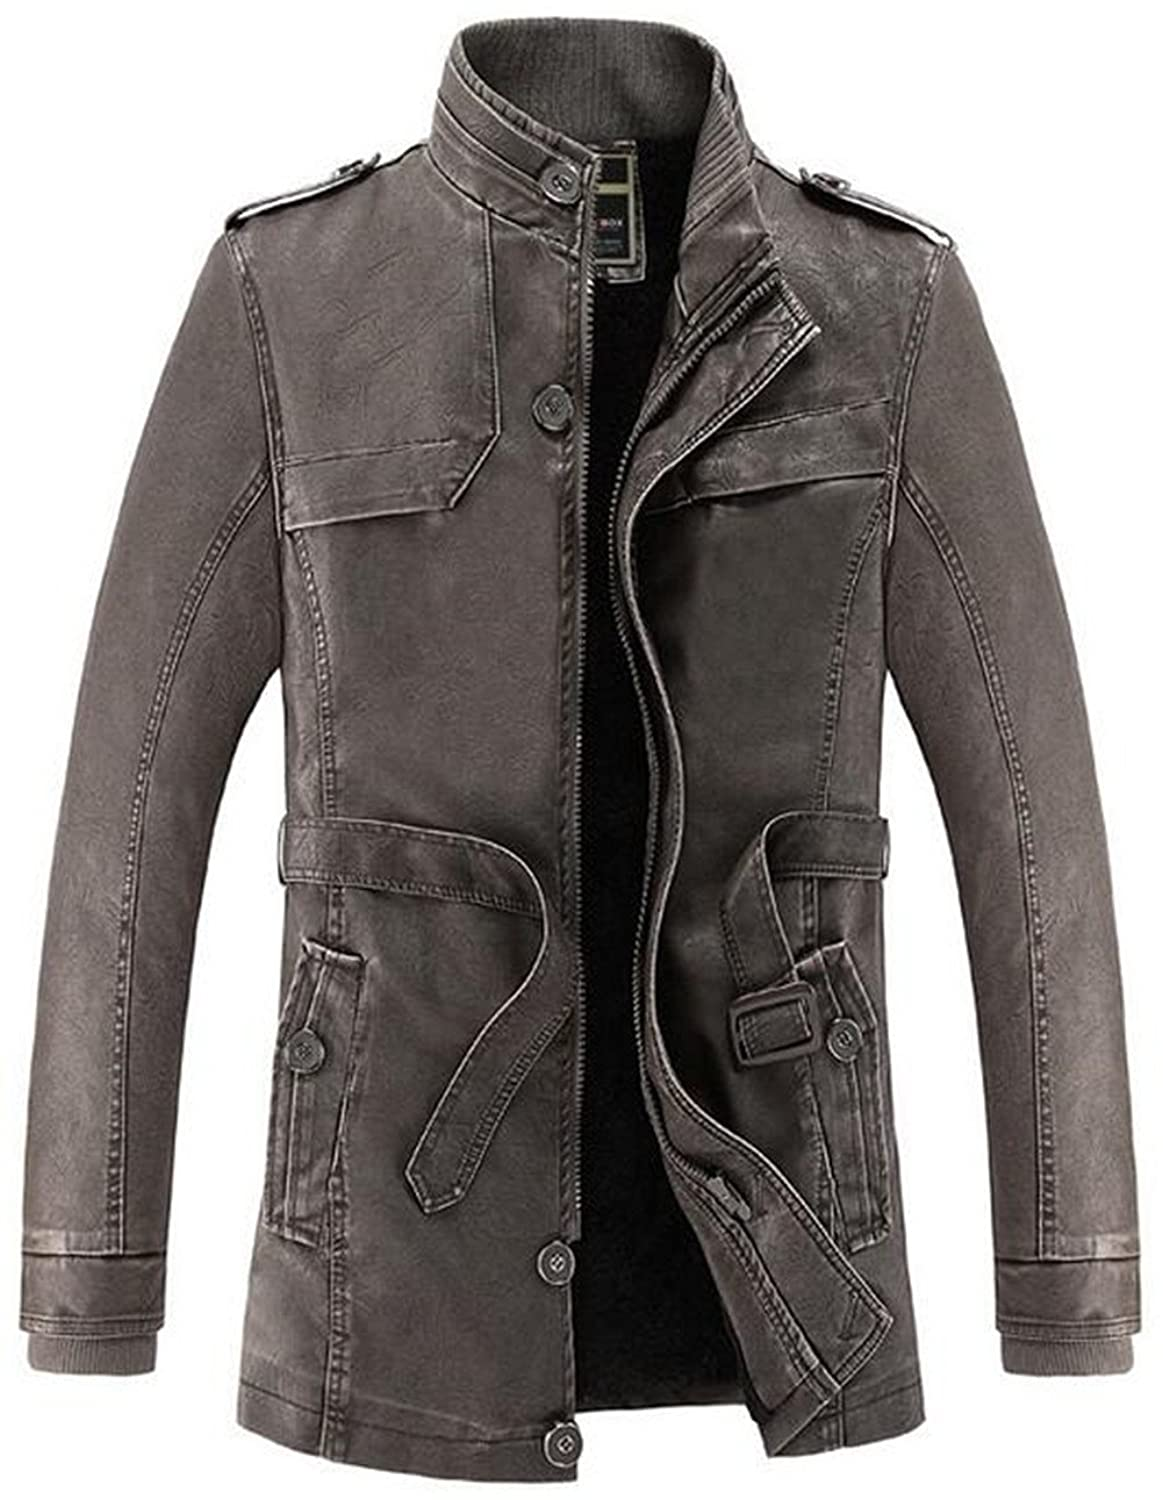 JJZXX Men's Faux Leather Jacket Thicken Warm Long Windbreaker Outerwear Velvet Lined